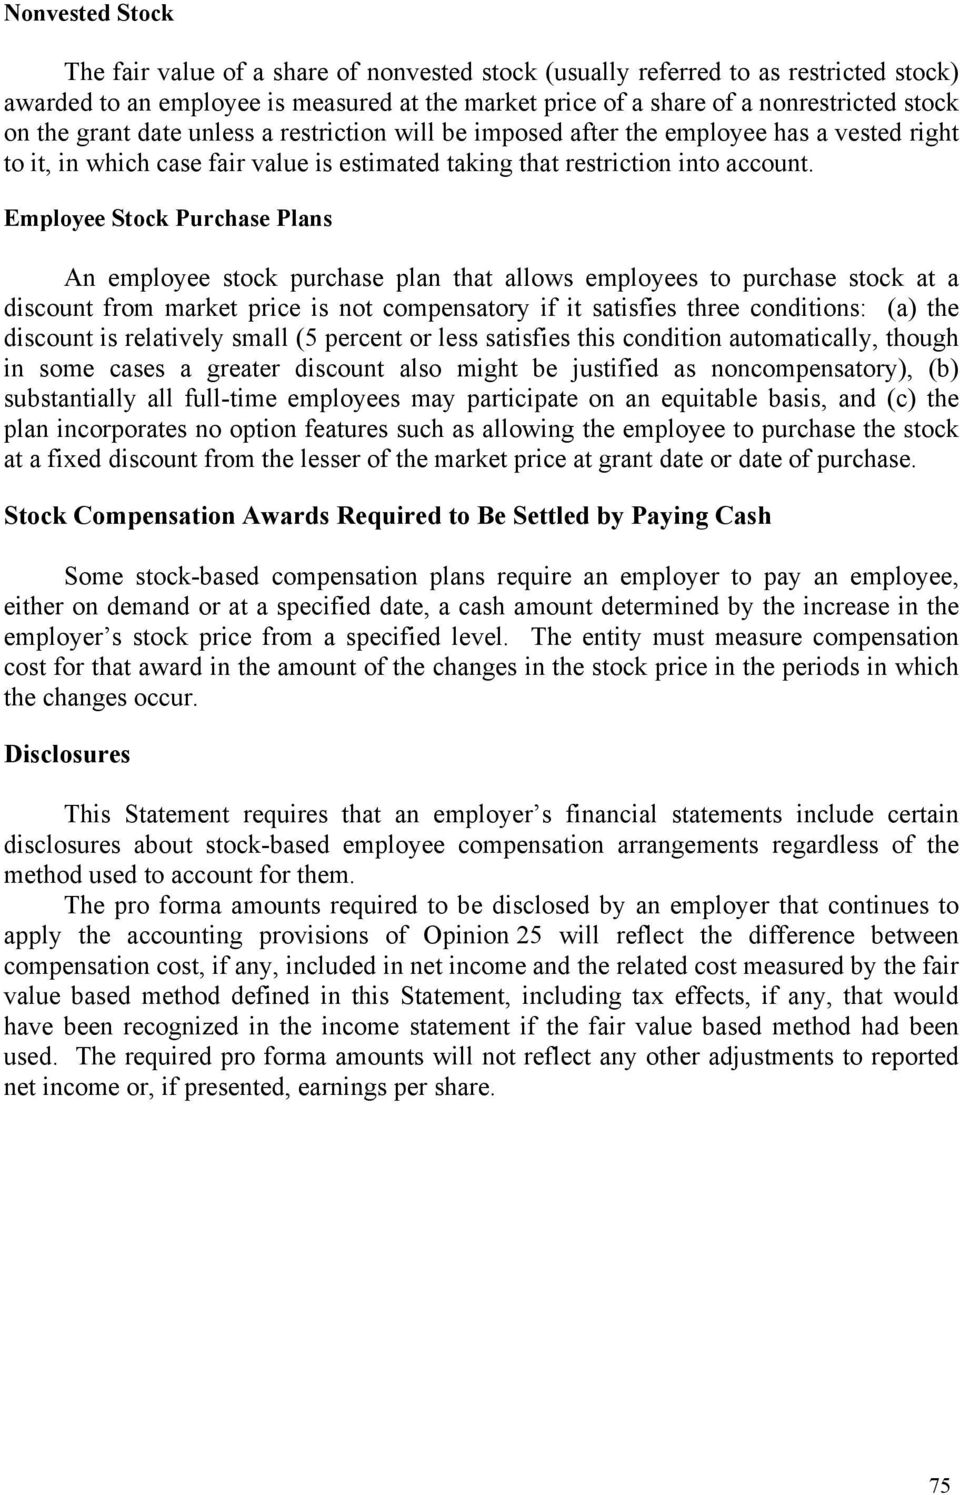 Employee Stock Purchase Plans An employee stock purchase plan that allows employees to purchase stock at a discount from market price is not compensatory if it satisfies three conditions: (a) the